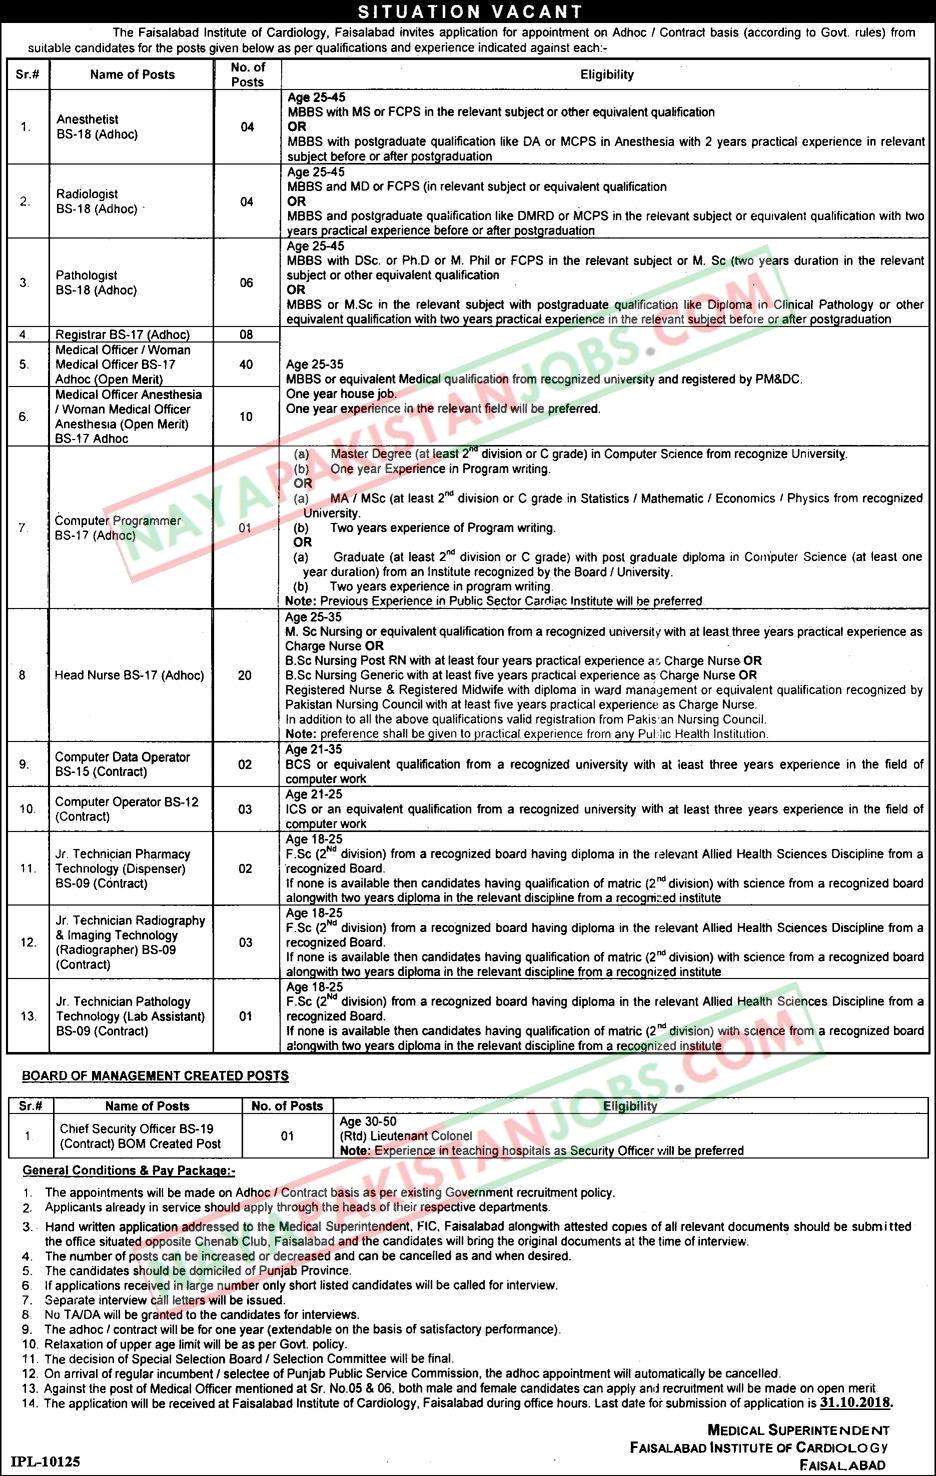 Latest Vacancies Announced in PPSC.GOP.PK Punjab Public Service Commission PPSC 23 October 2018 - Naya Pakistan